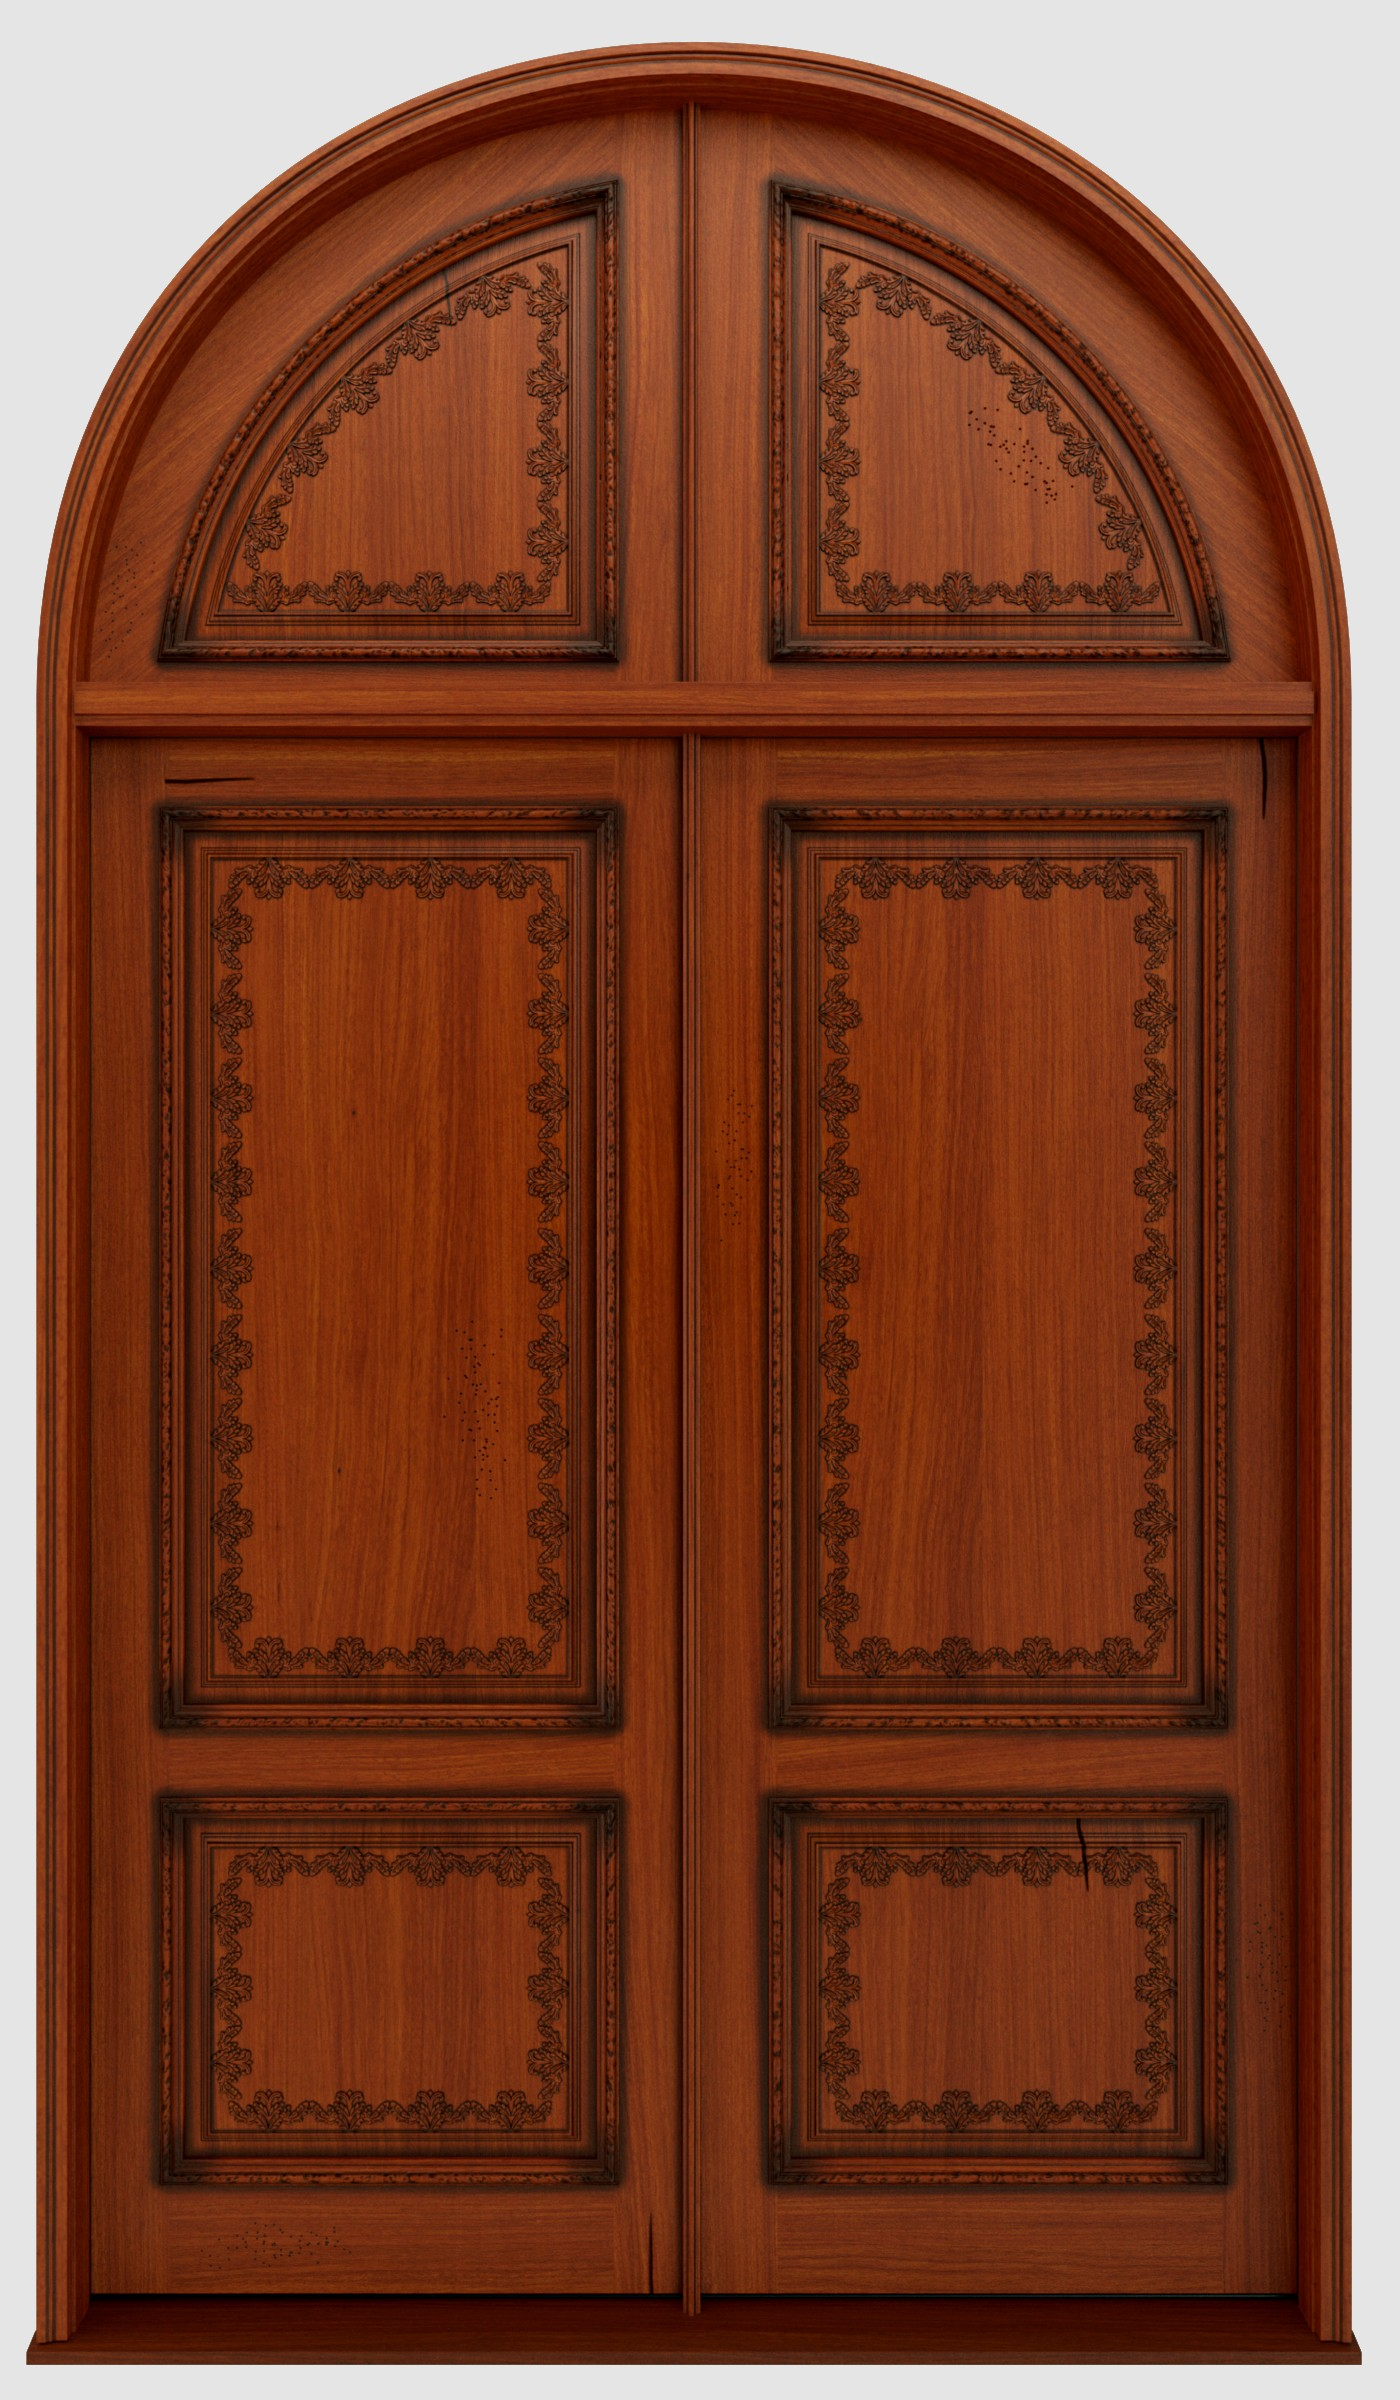 Carved Doors Hand Carved Doors Amp Wood Carved Doors